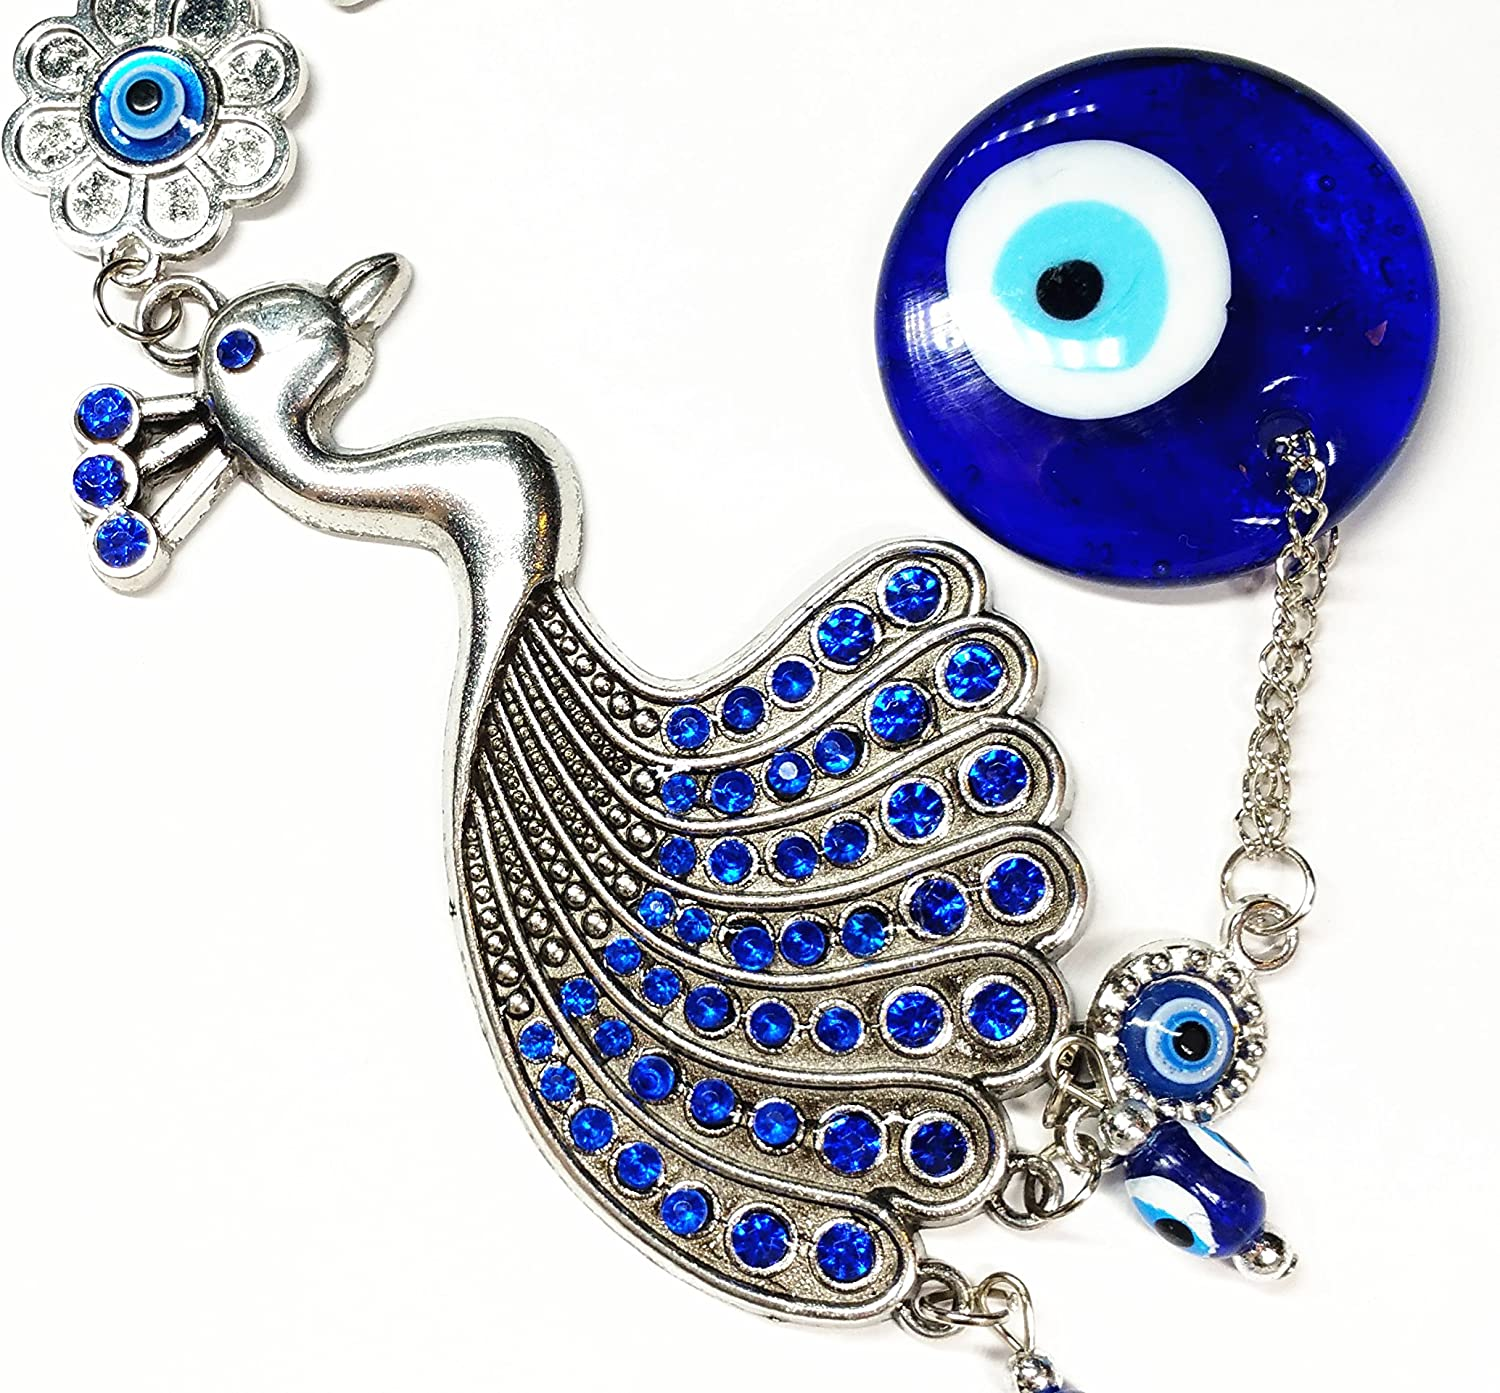 With a Betterdecor Pounch -056 No Model Blue Evil Eye with Peacock Hanging for Protection